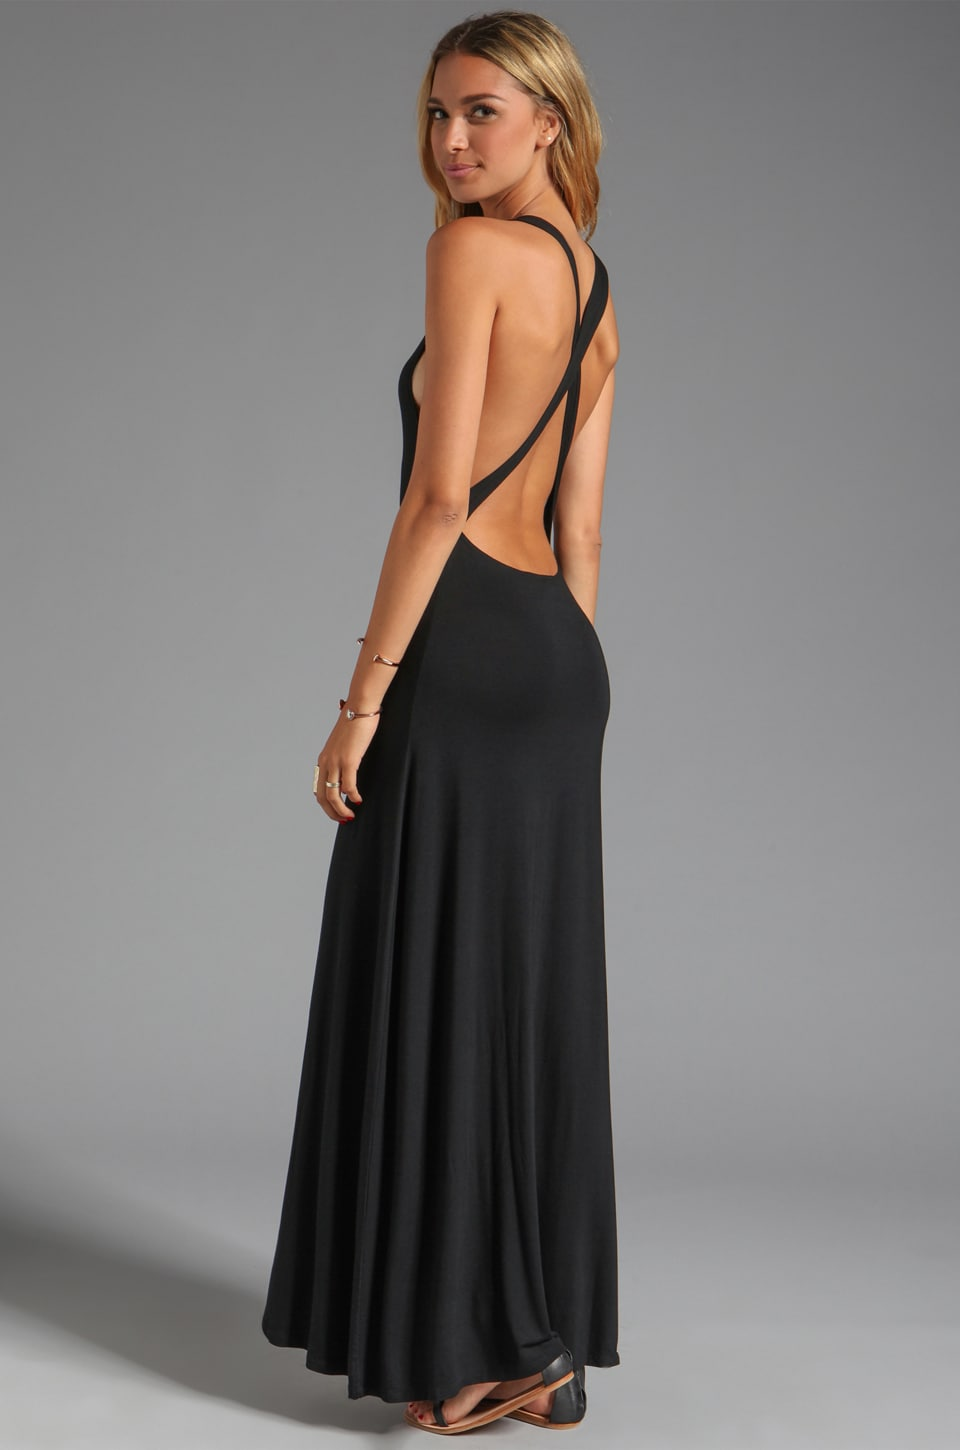 Lovers + Friends Feeling Fine Maxi Dress in Black